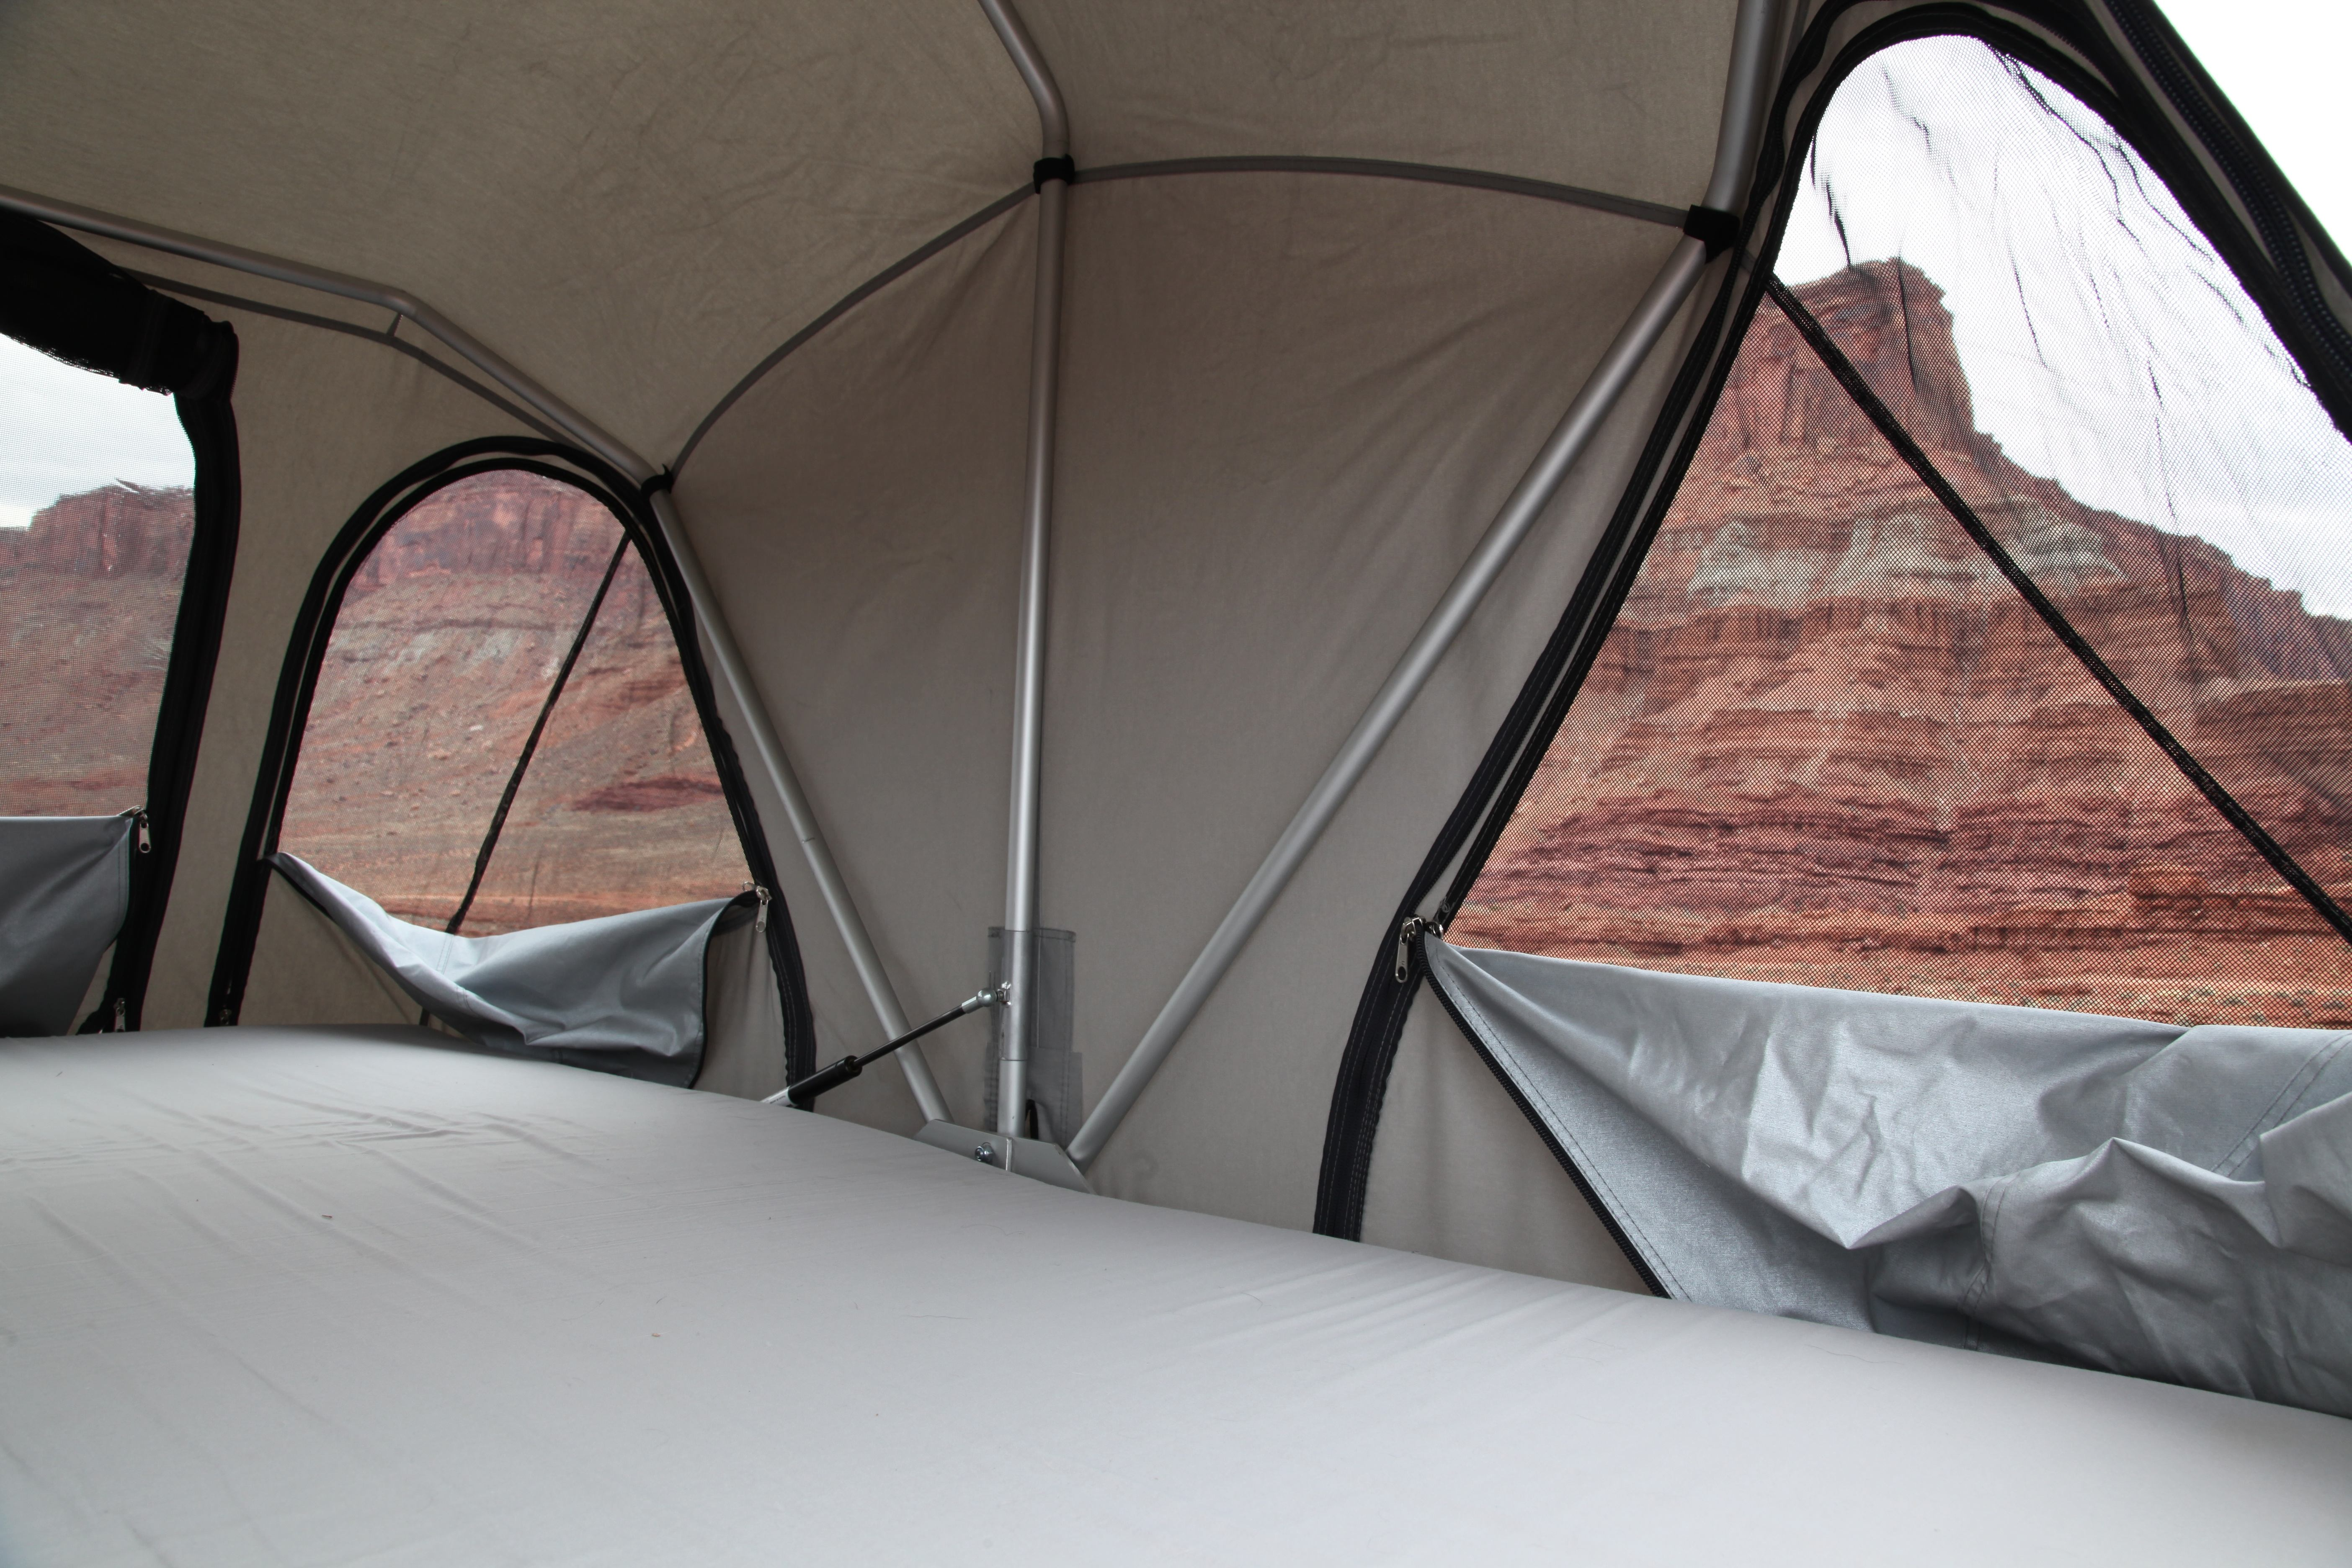 The light colored interior combined with the oversized windows makes for a nice habitat unlike many tents which can be dark and dreary. & Field Tested: James Baroud Horizon Vision (part 2) u2013 Expedition Portal